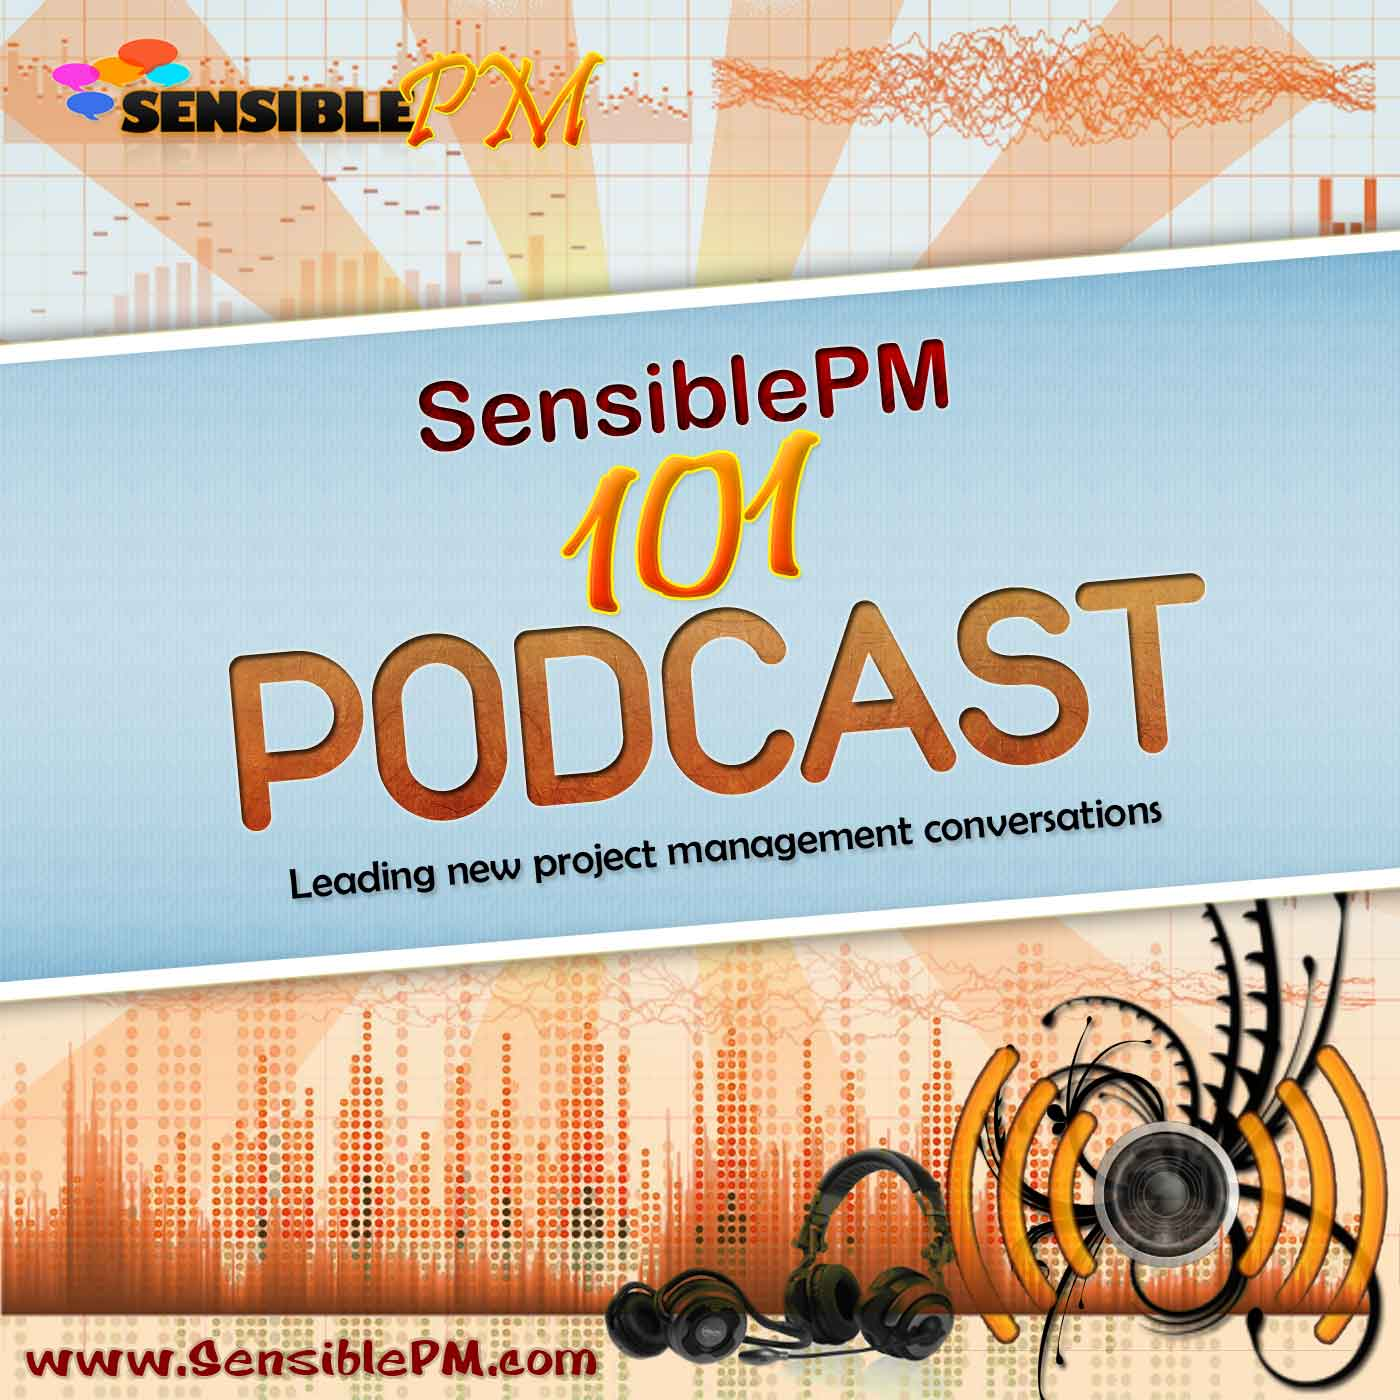 This is the SensiblePM 101 Podcast.